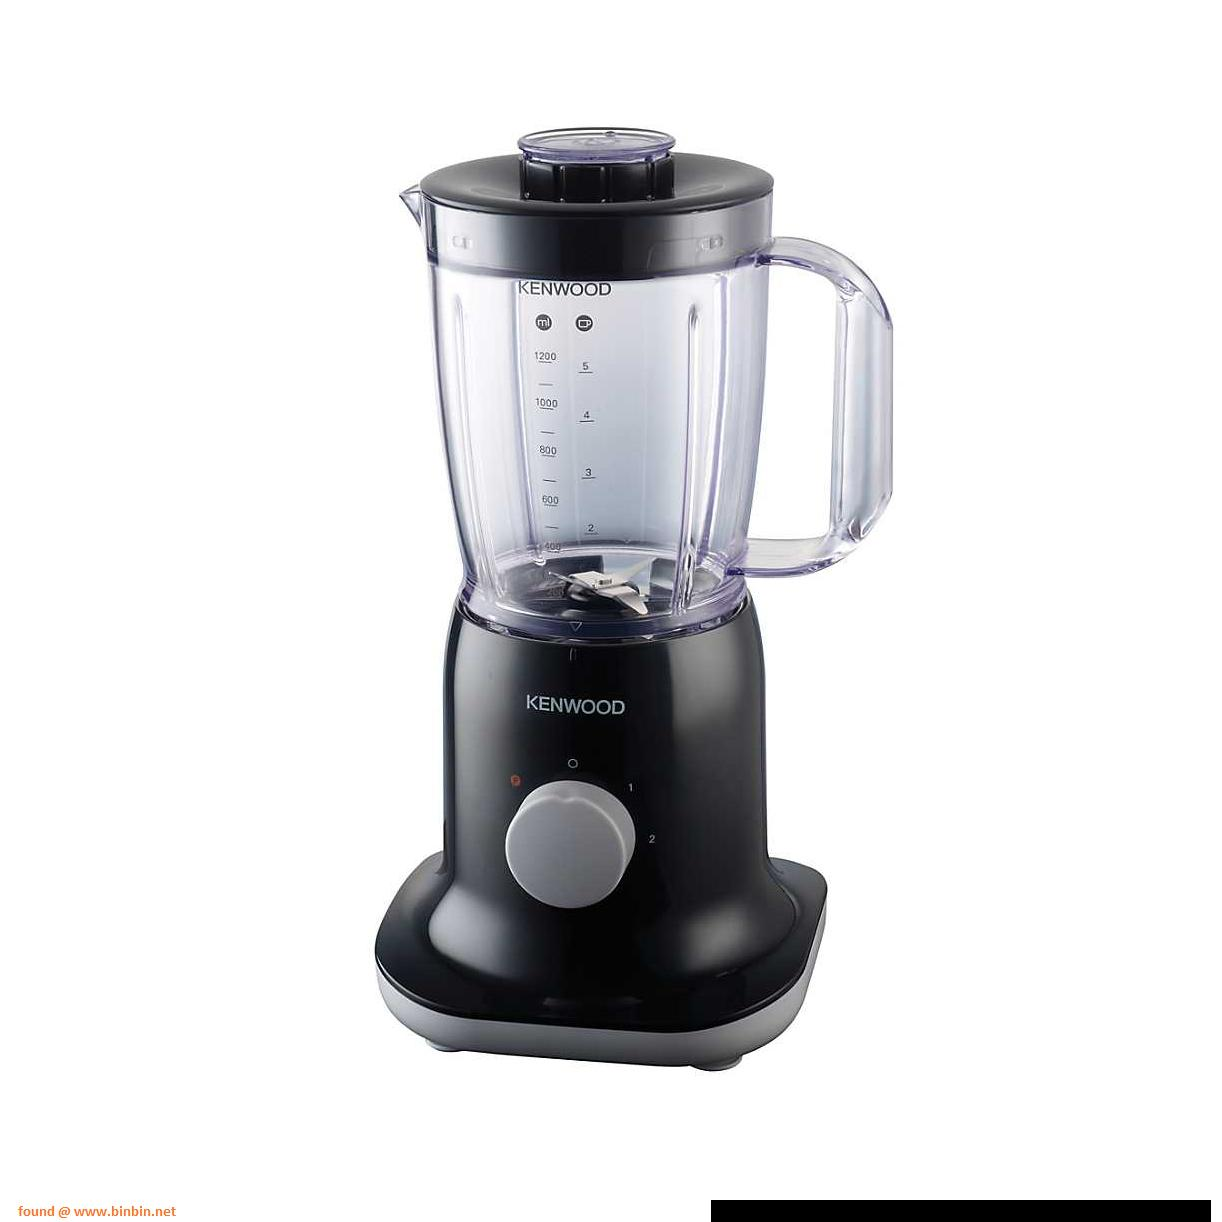 Kenwood - blender retro BL460 - 600W